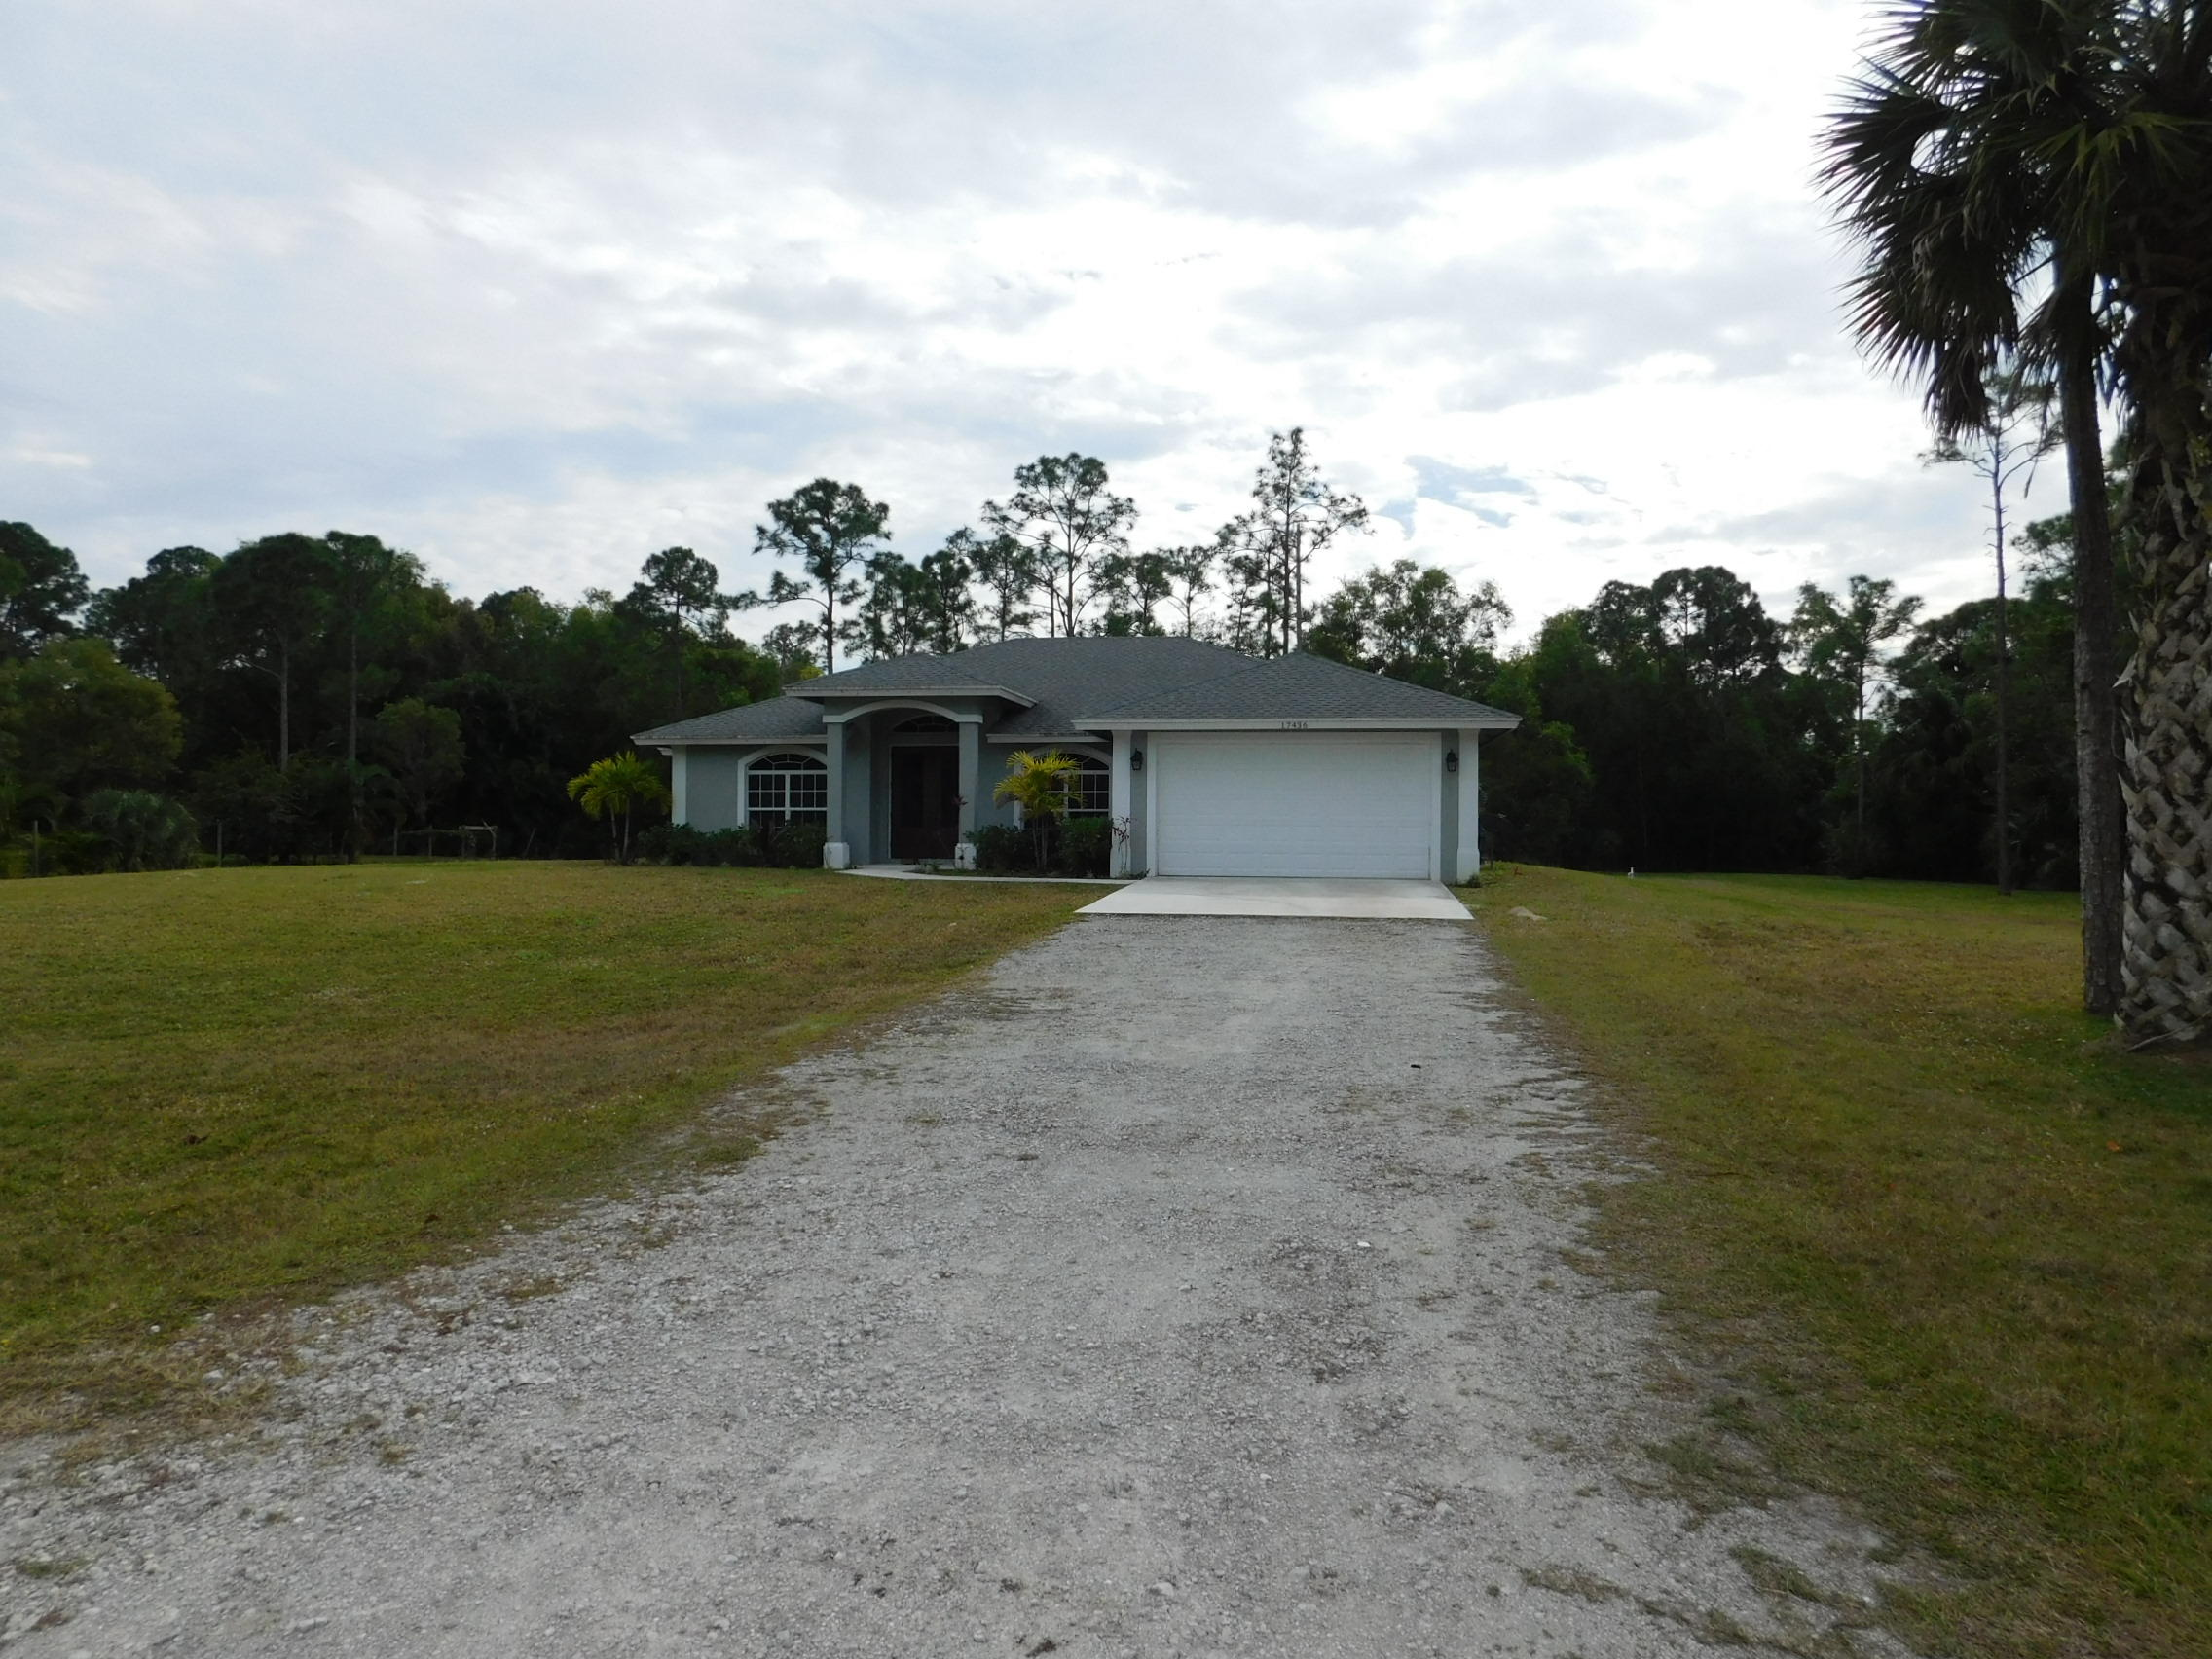 17436 91st Place The Acreage, FL 33470 small photo 24